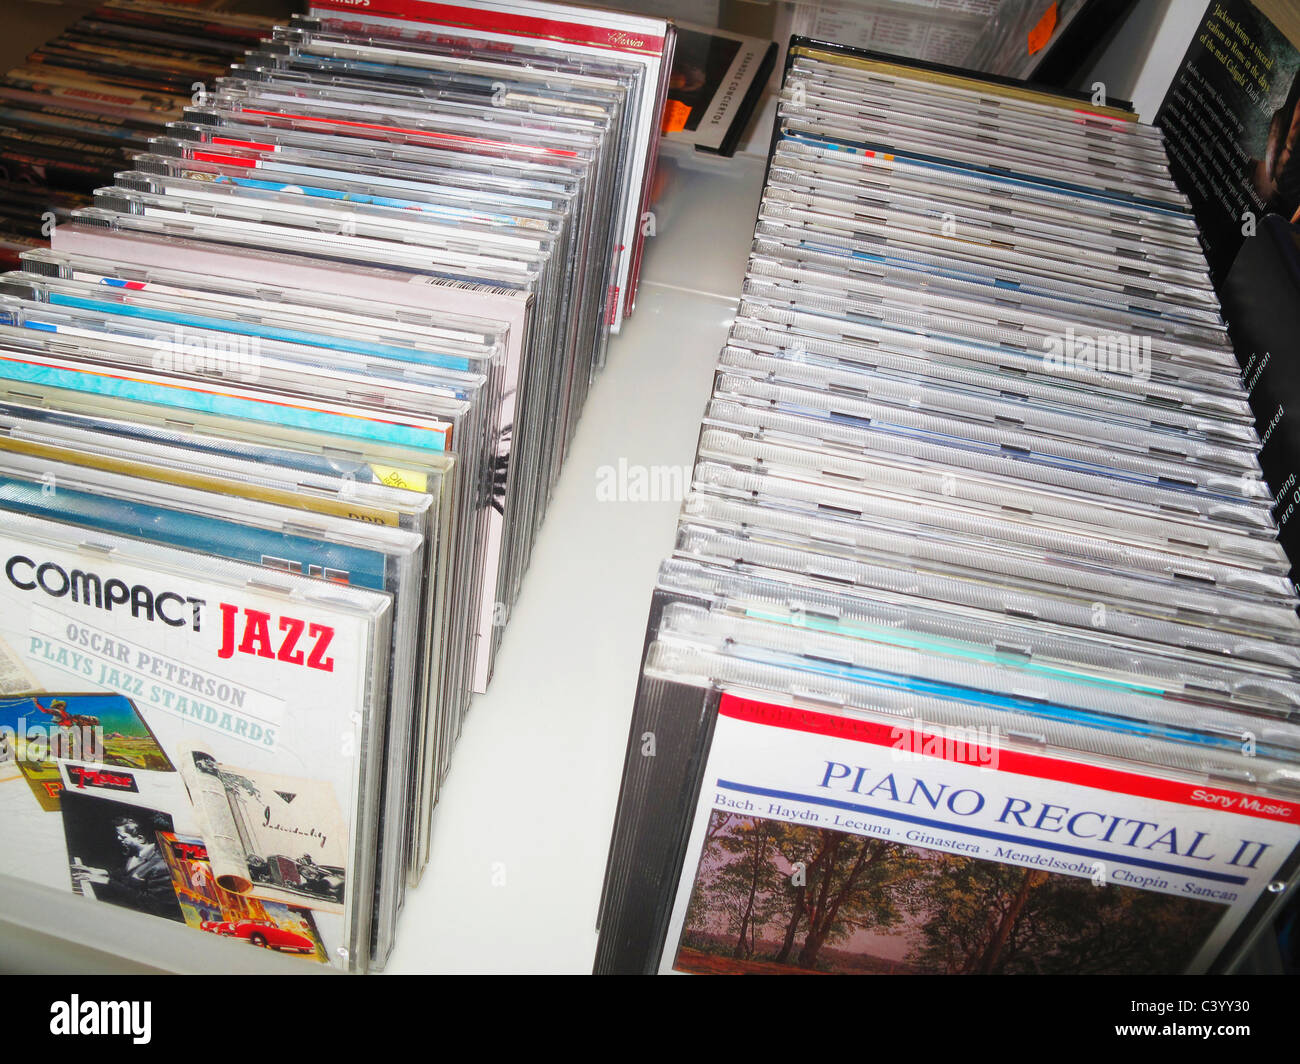 Music CD's for sale in secondhand shop - Stock Image